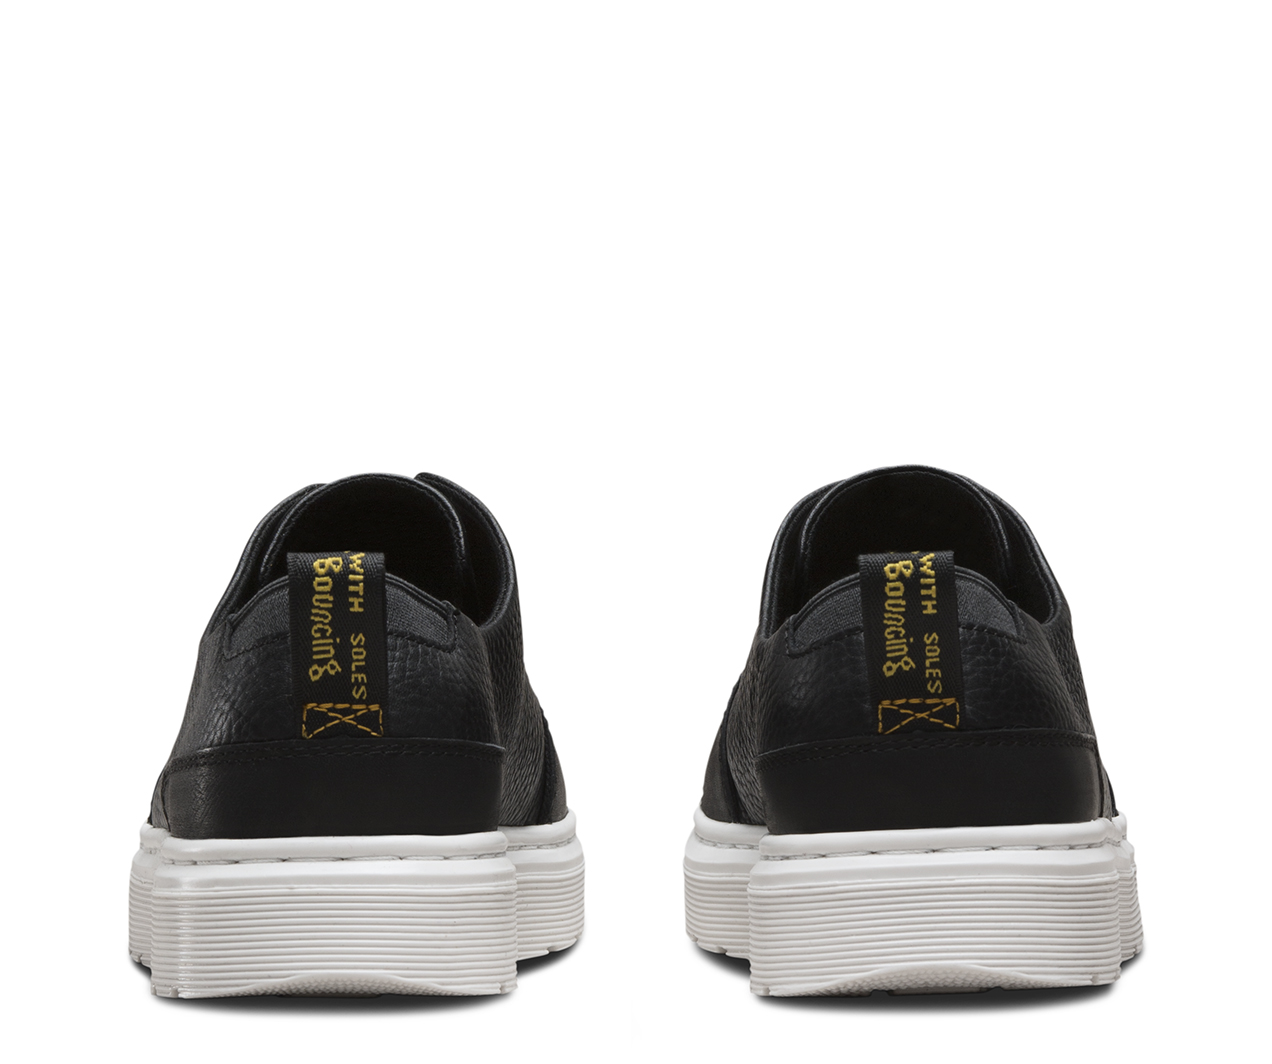 dr martens shoes price in, Dr.Martens LYLAH TEMPERLEY SHOES